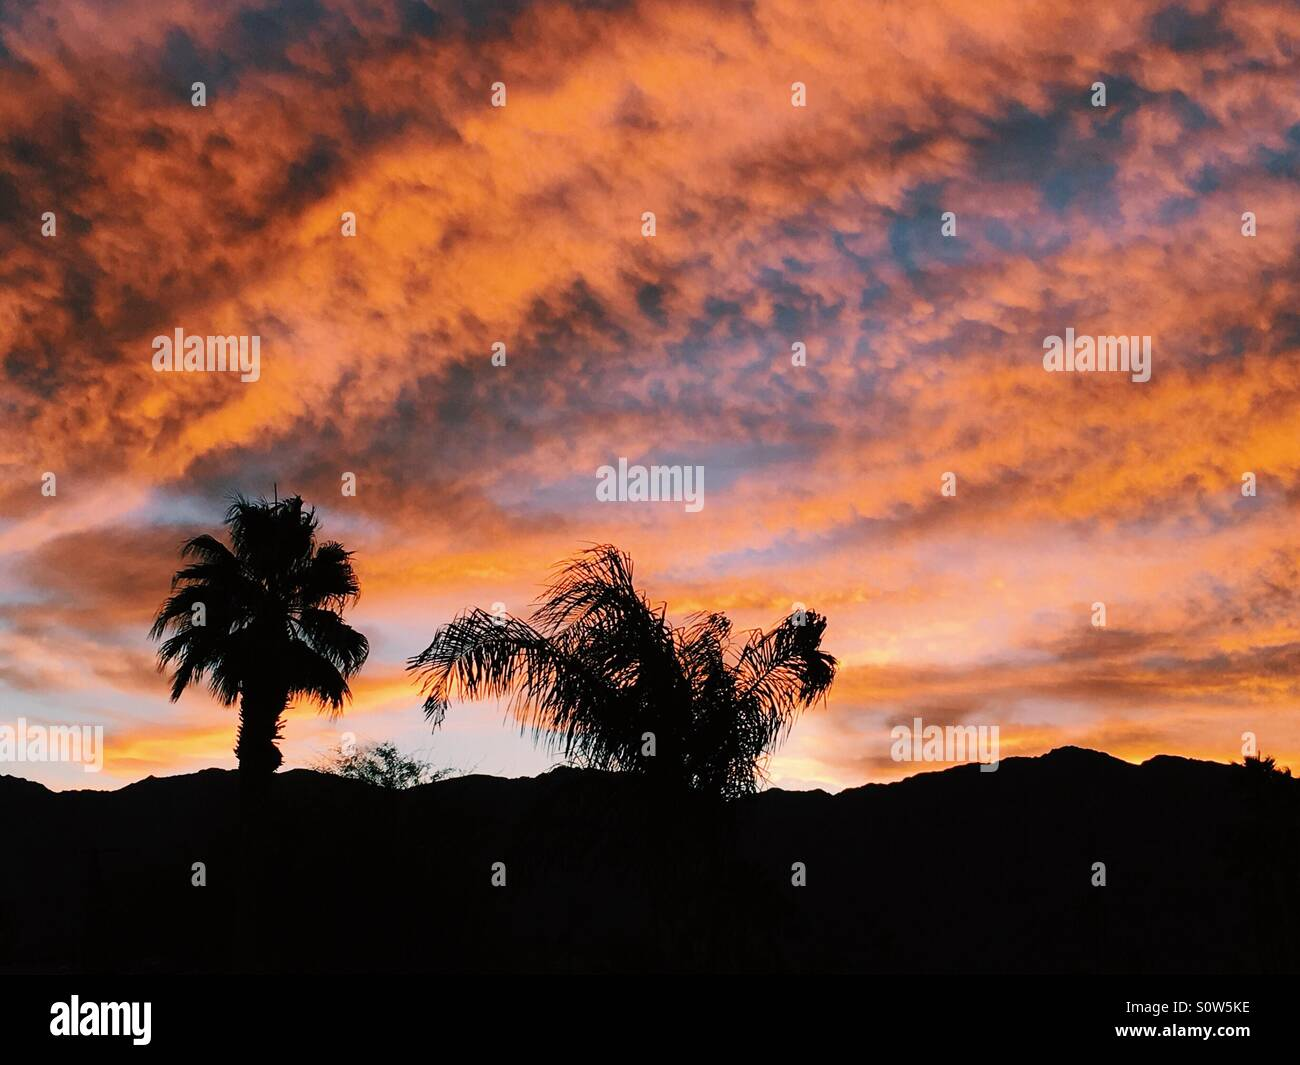 sunset-in-la-quinta-california-usa-S0W5K